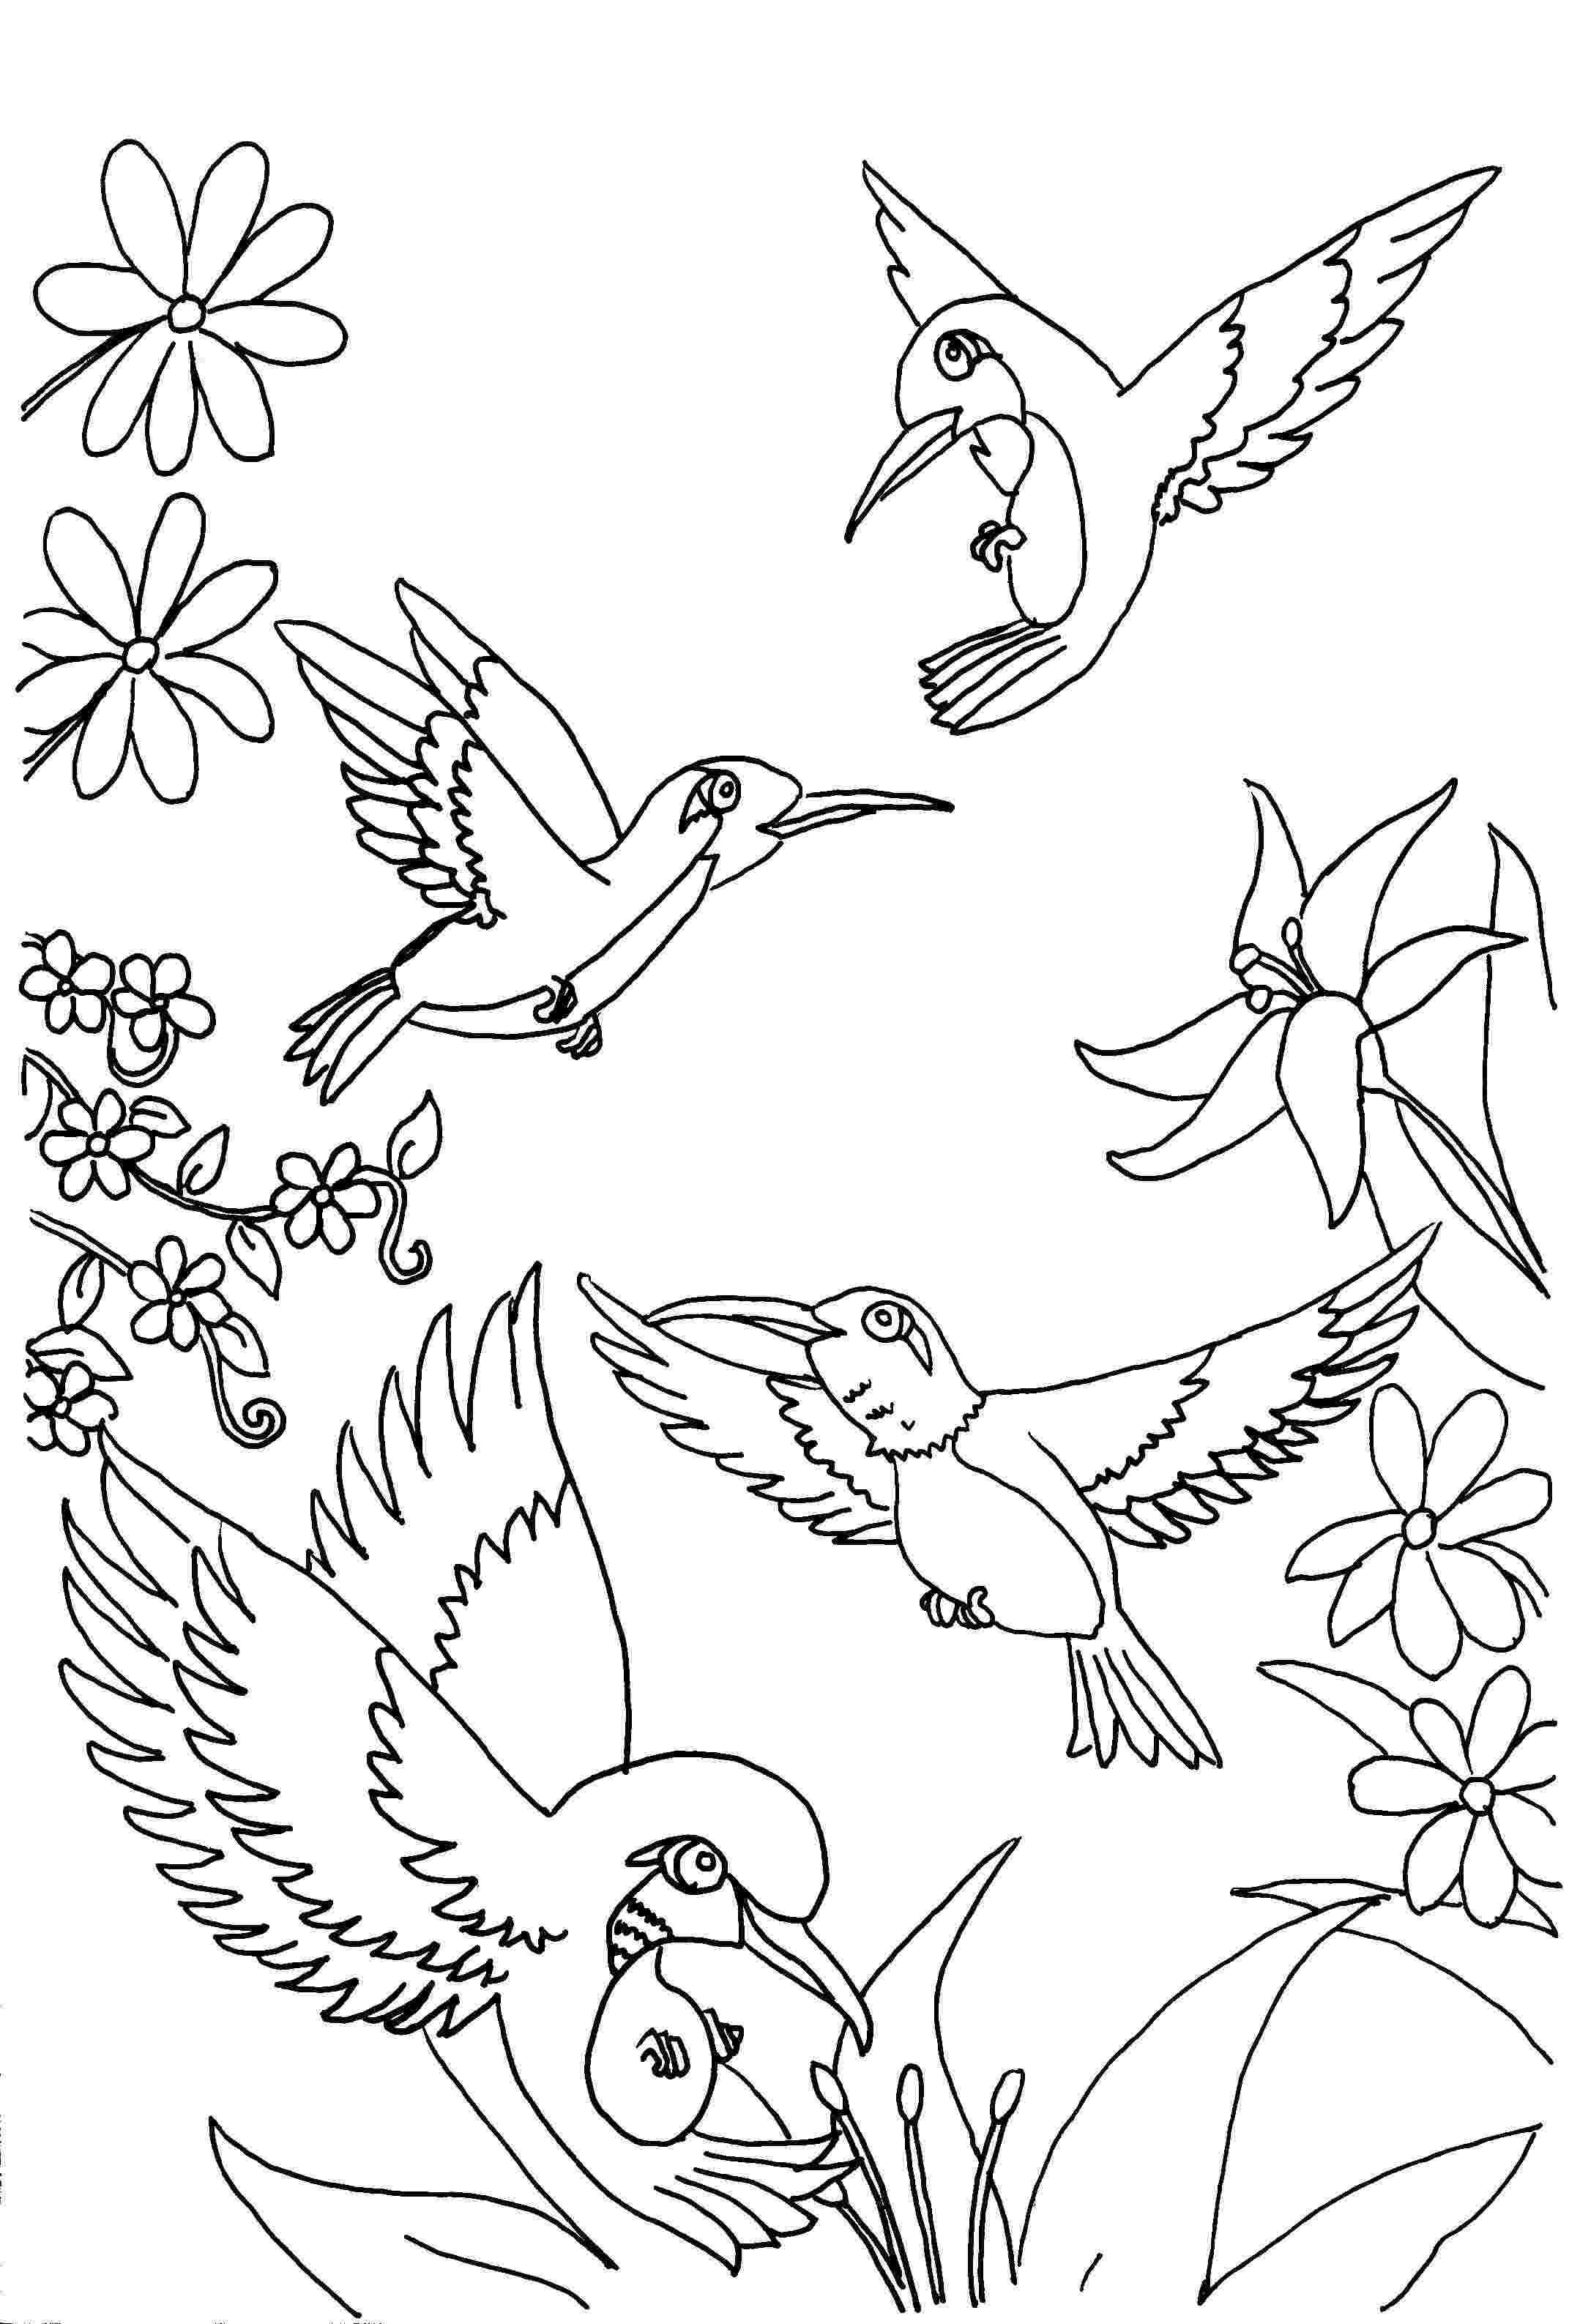 hummingbird colouring pages color book humming birds hummingbird coloring page hummingbird colouring pages